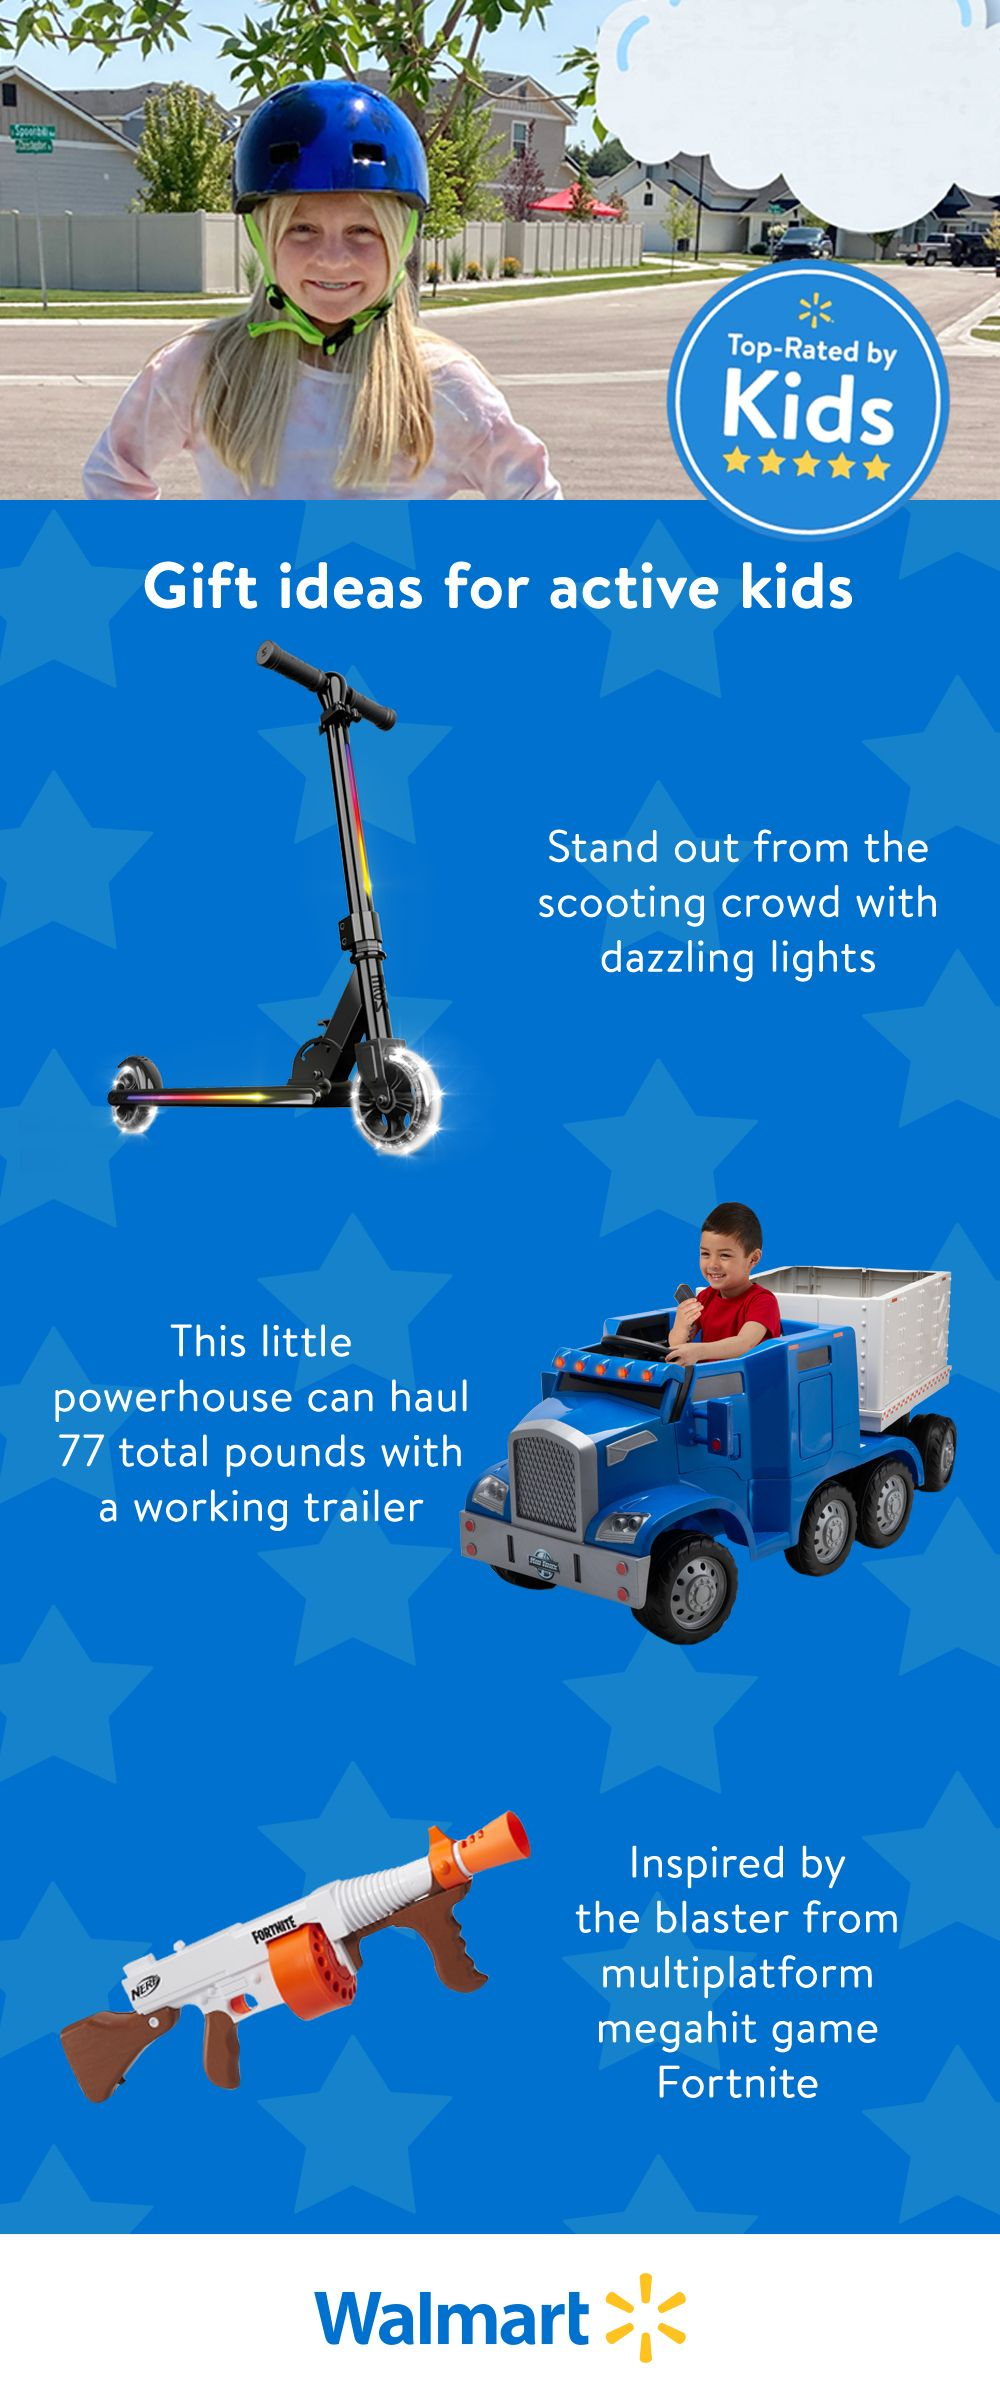 Check out the best toys of 2020 at Walmart. These products have been Top Rated by Kids and will encourage your child to enjoy outdoor play.